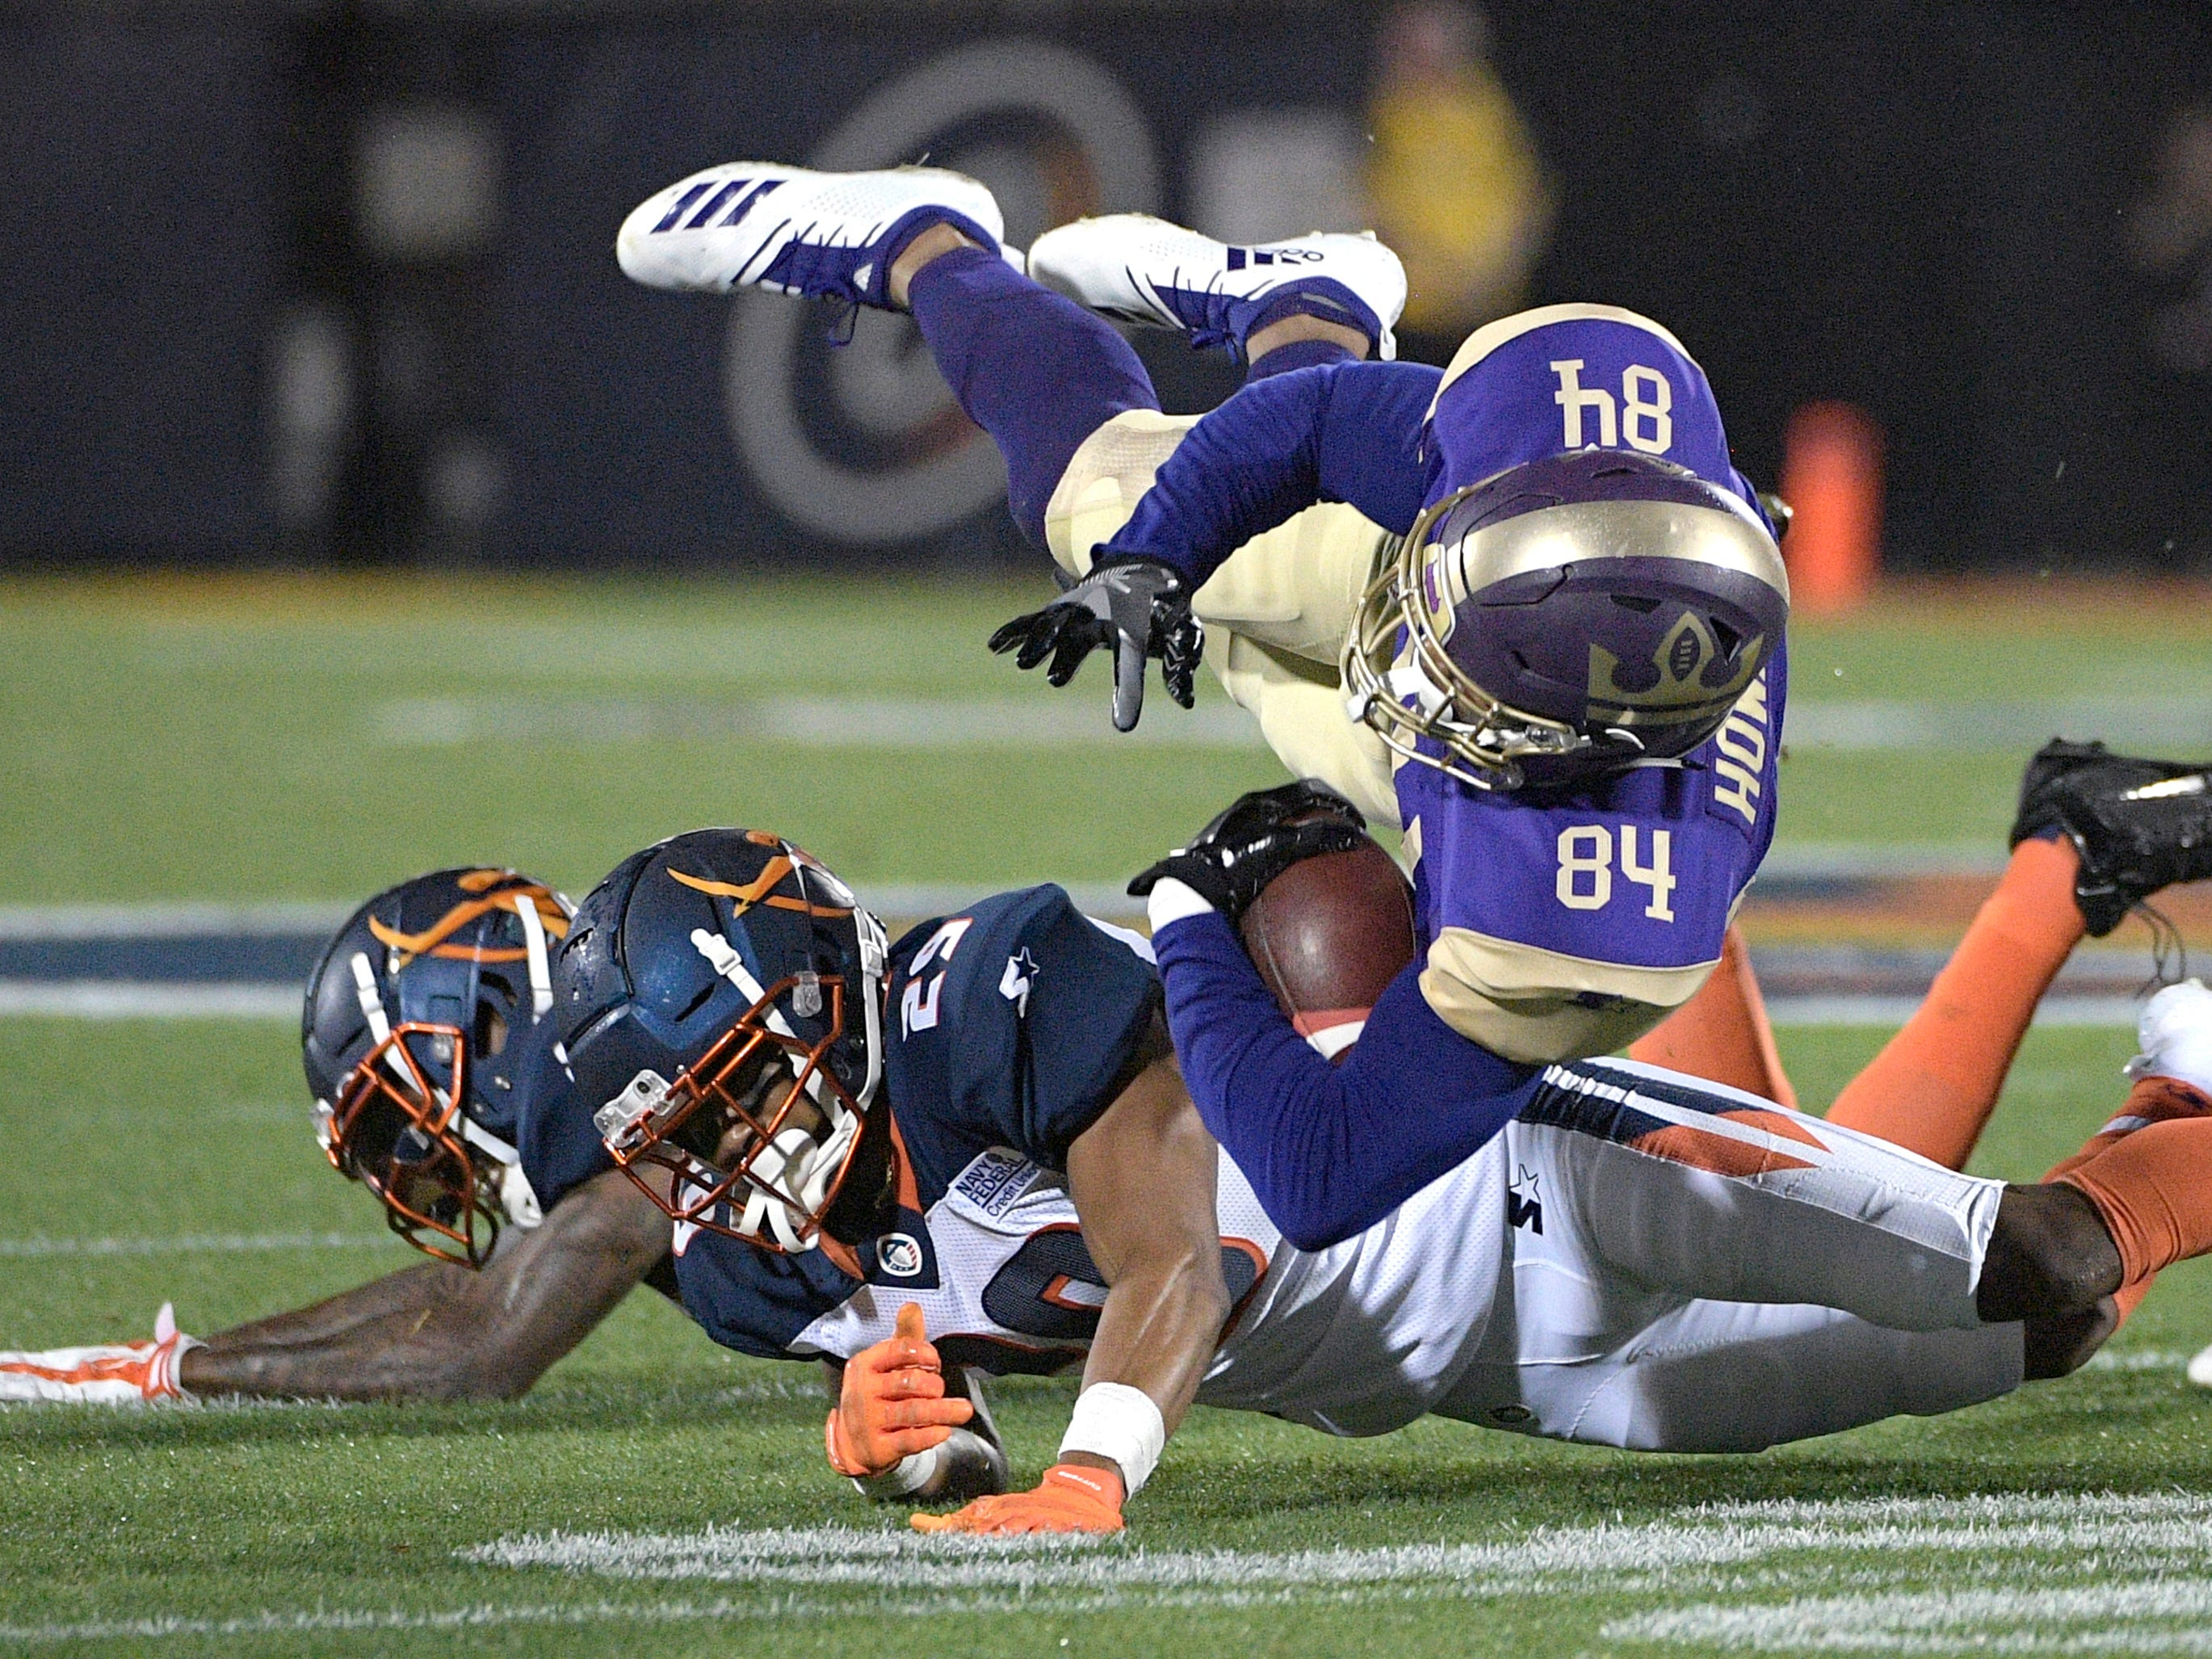 Atlanta Legends receiver Bug Howard (84) is tackled by Orlando Apollos safety Will Hill and defensive back Keith Reaser (29) after catching a pass during the first half of an Alliance of American Football game.